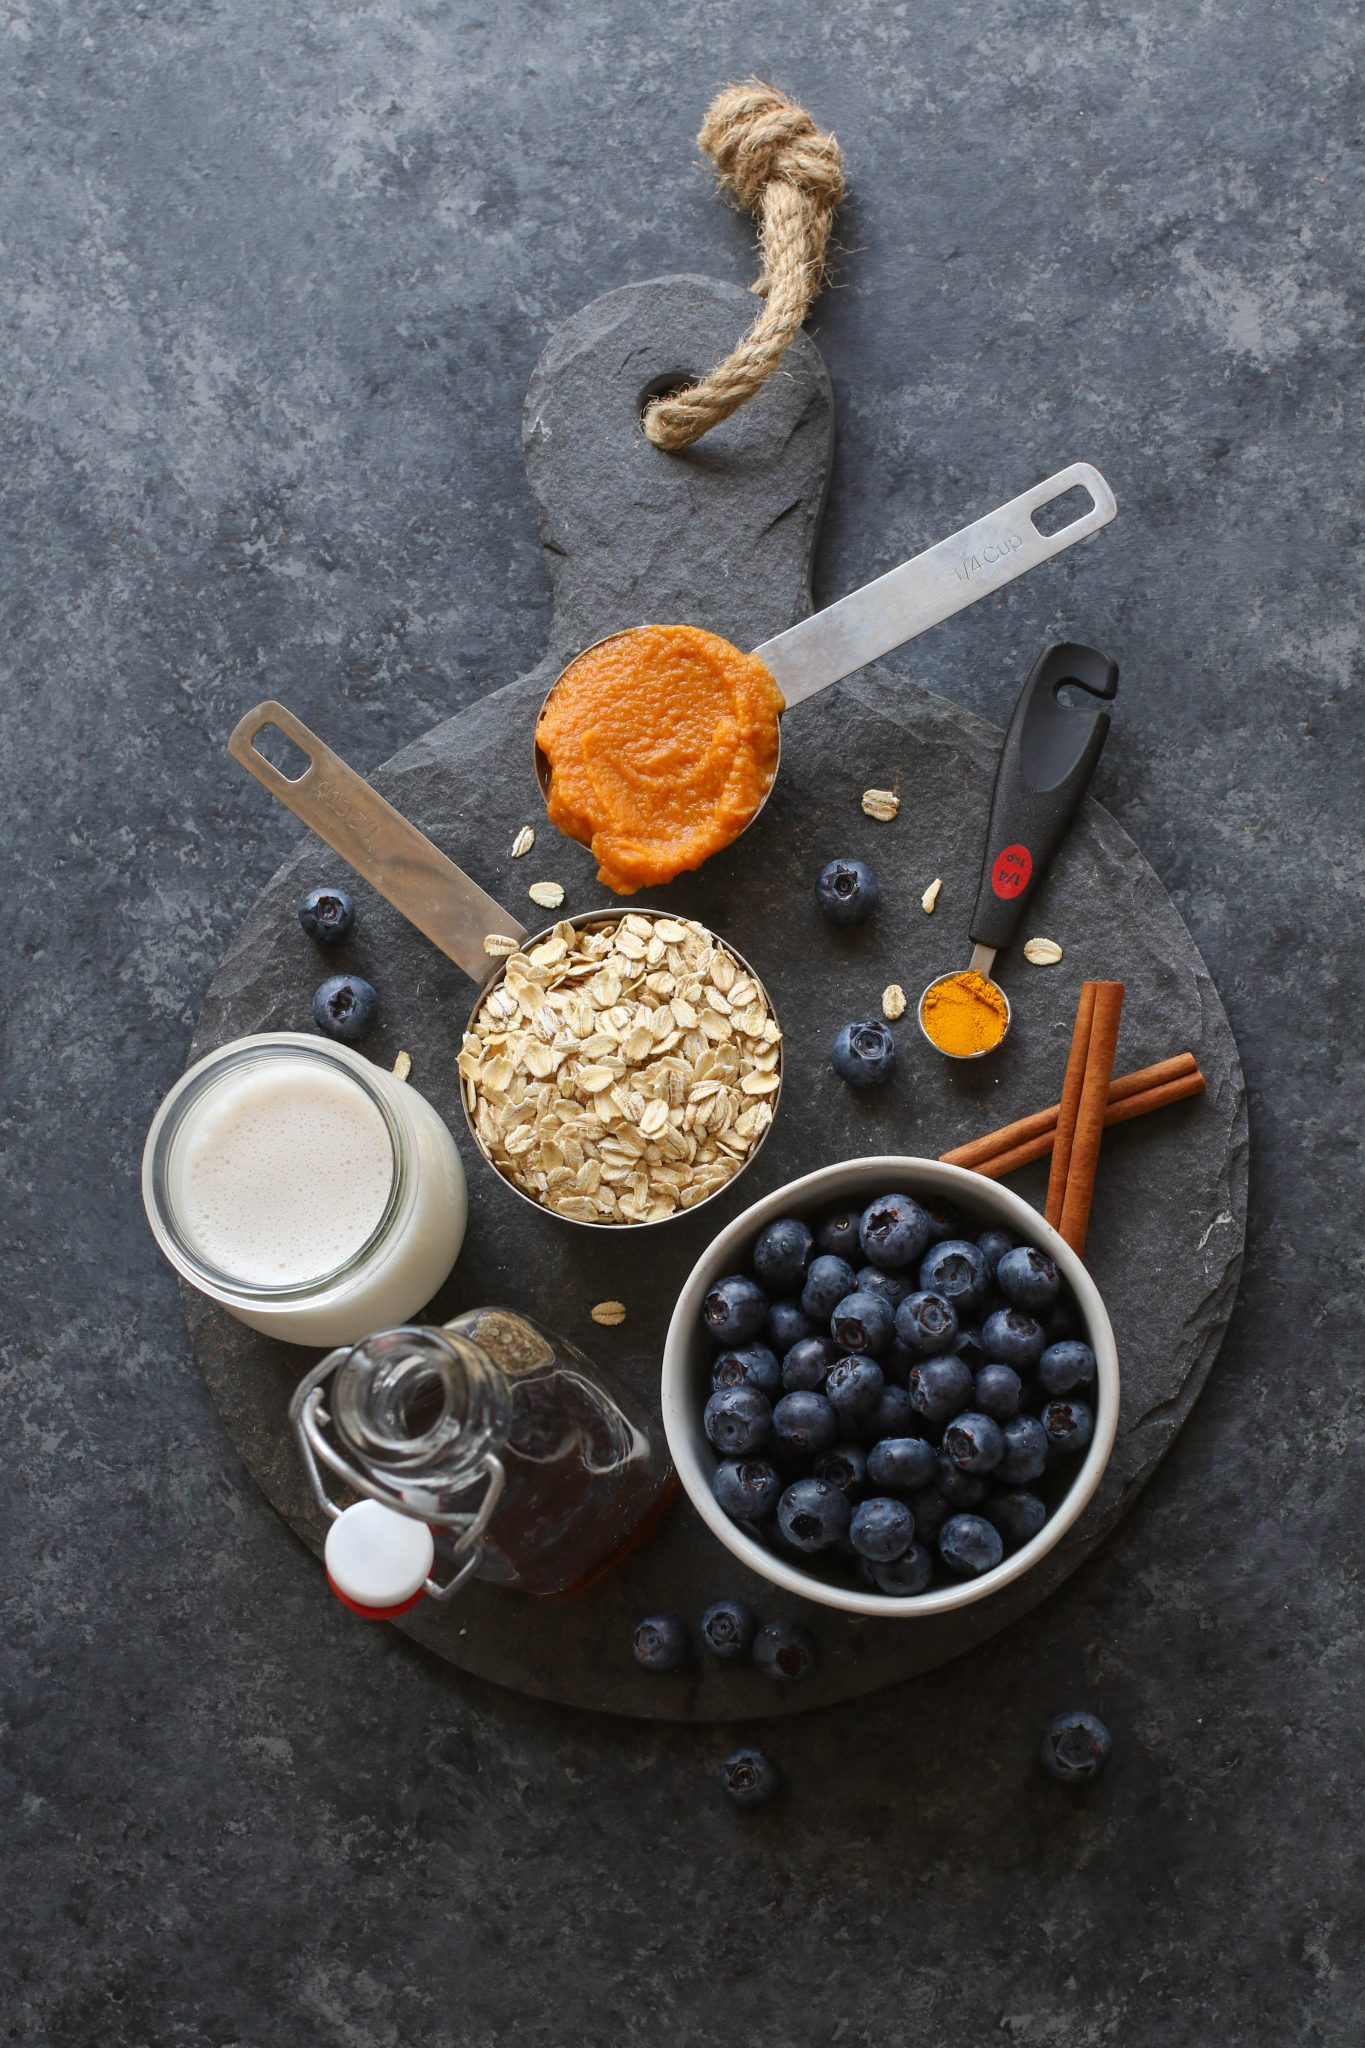 Golden Oats with Blueberries & Cashew Butter Ingredients